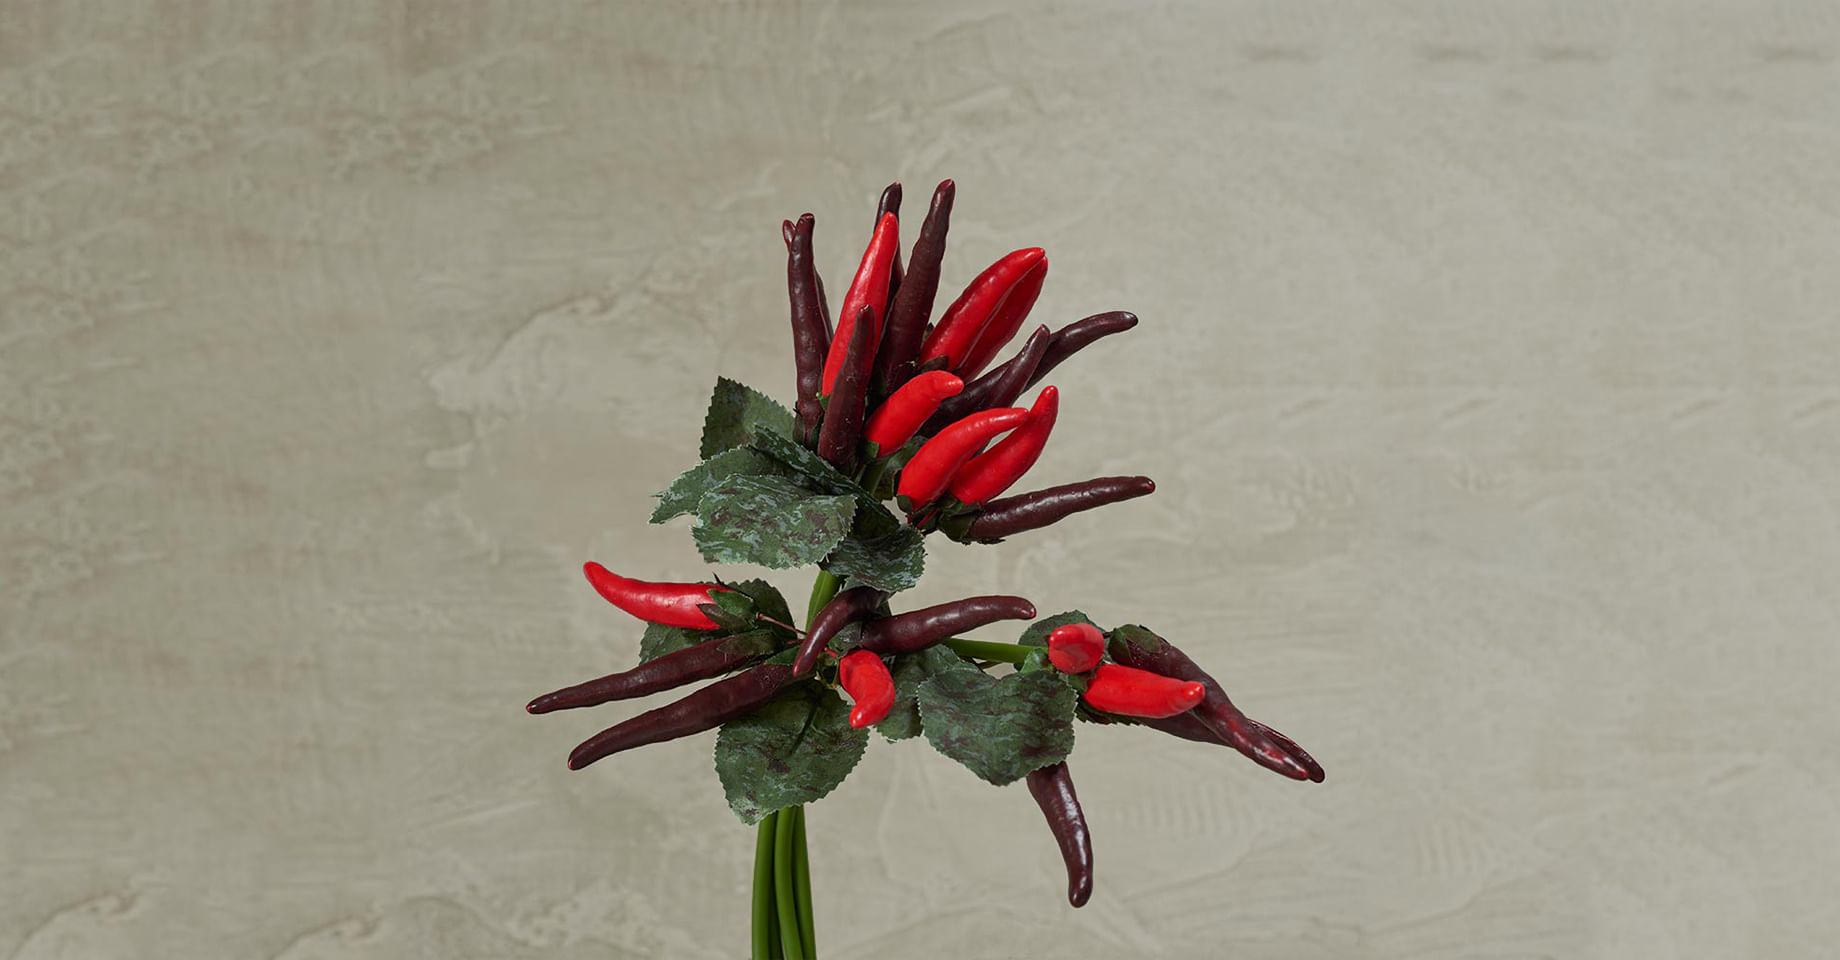 010106020_005_1-DECORATIVO-BOUQUET-PEPPER